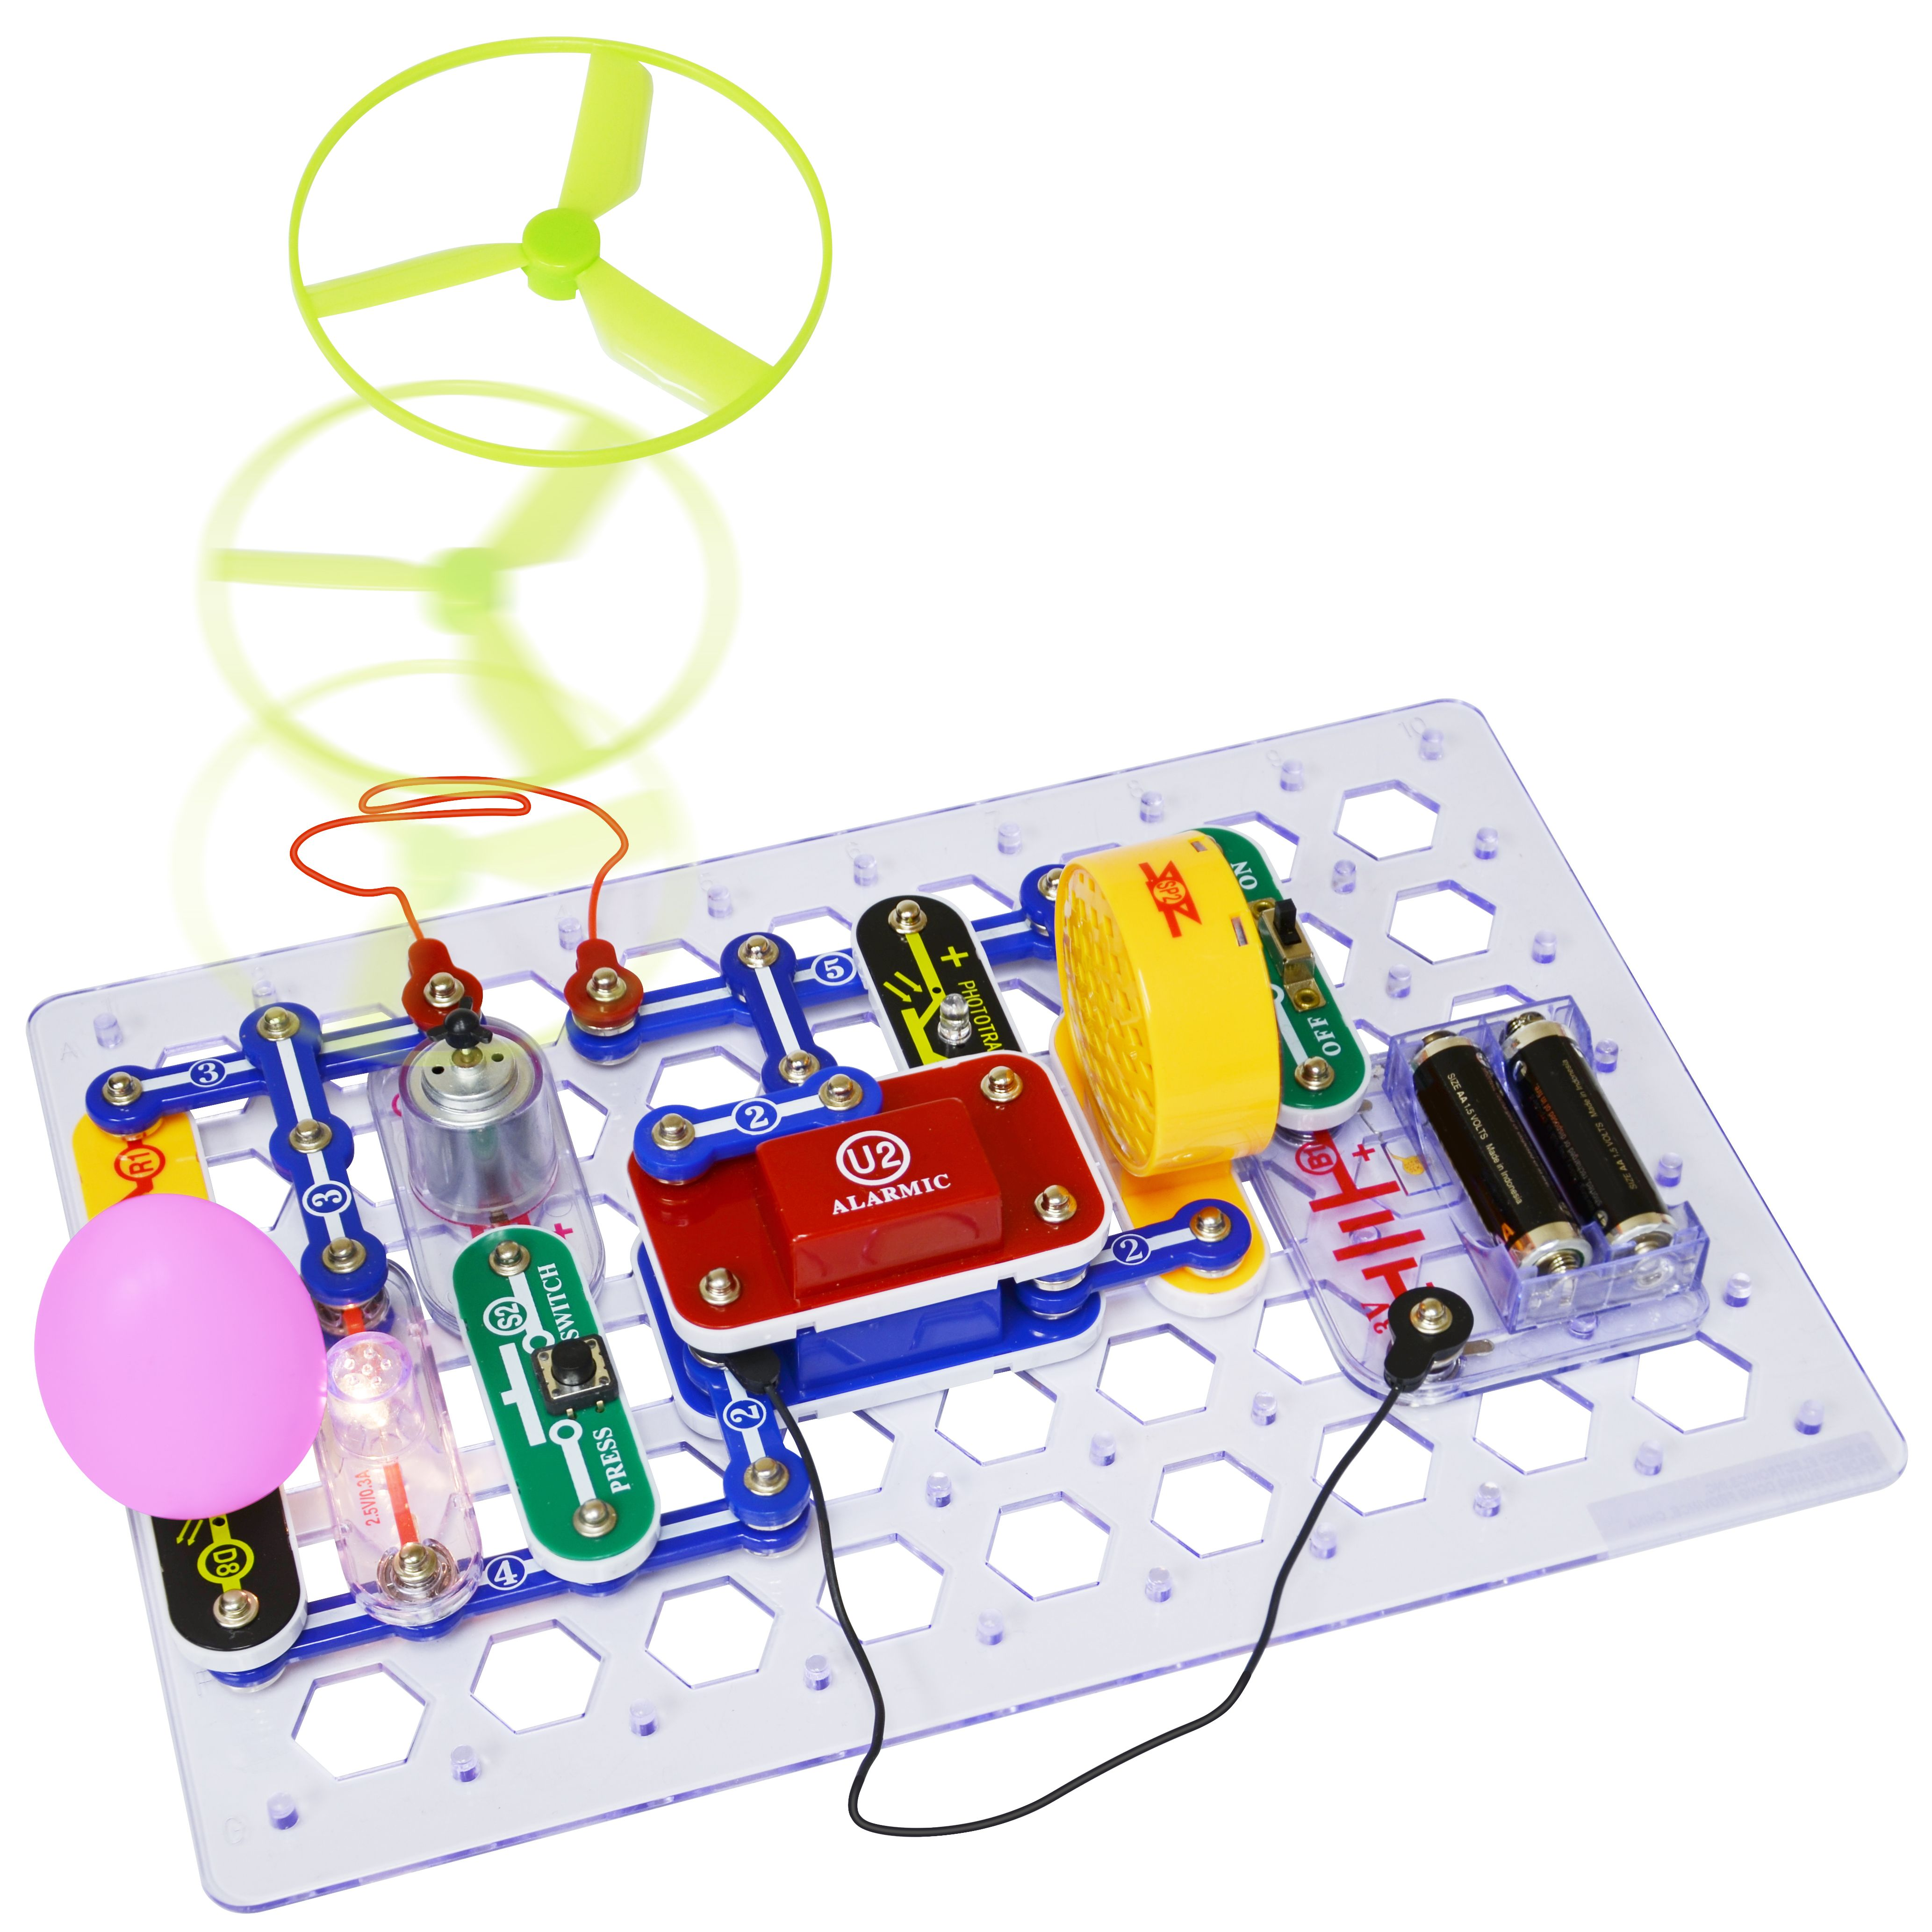 Snap Circuits Jr Select Is Here Build Over 130 Projects With 30 Circuit Parts